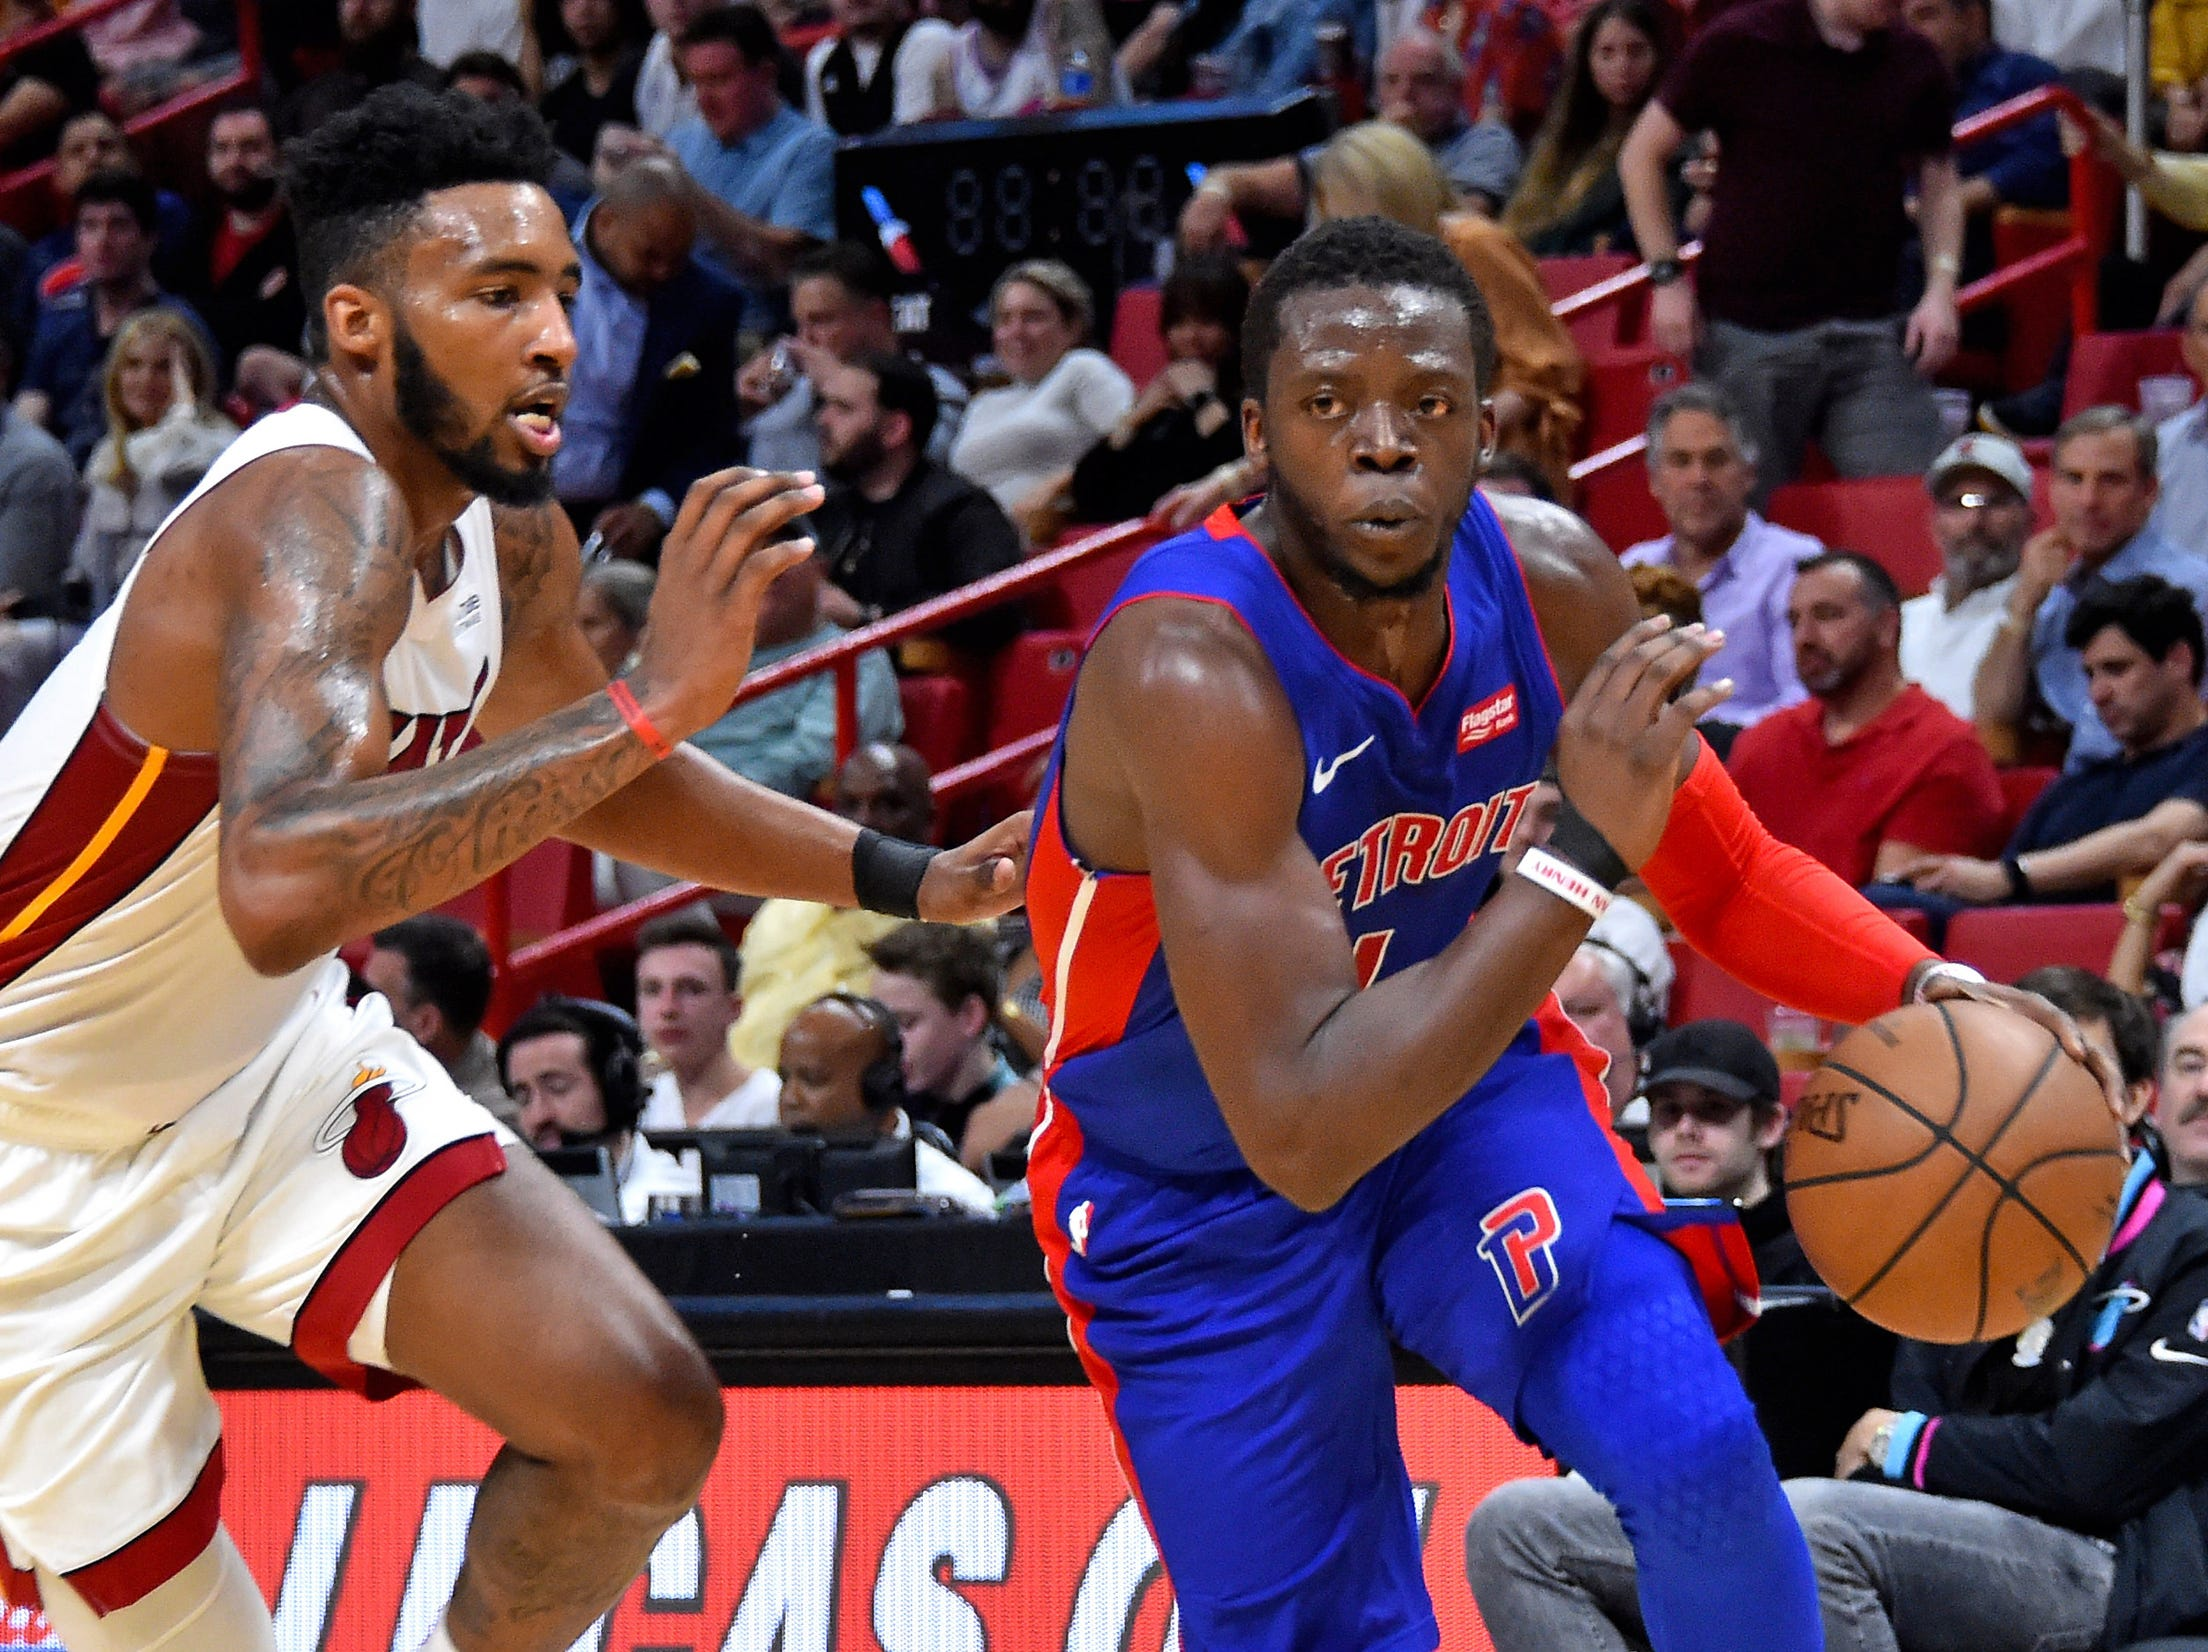 Detroit Pistons guard Reggie Jackson (1) drives to the basket as Miami Heat forward Derrick Jones Jr. (5) defends during the second half at American Airlines Arena on Wednesday, March 13, 2019.